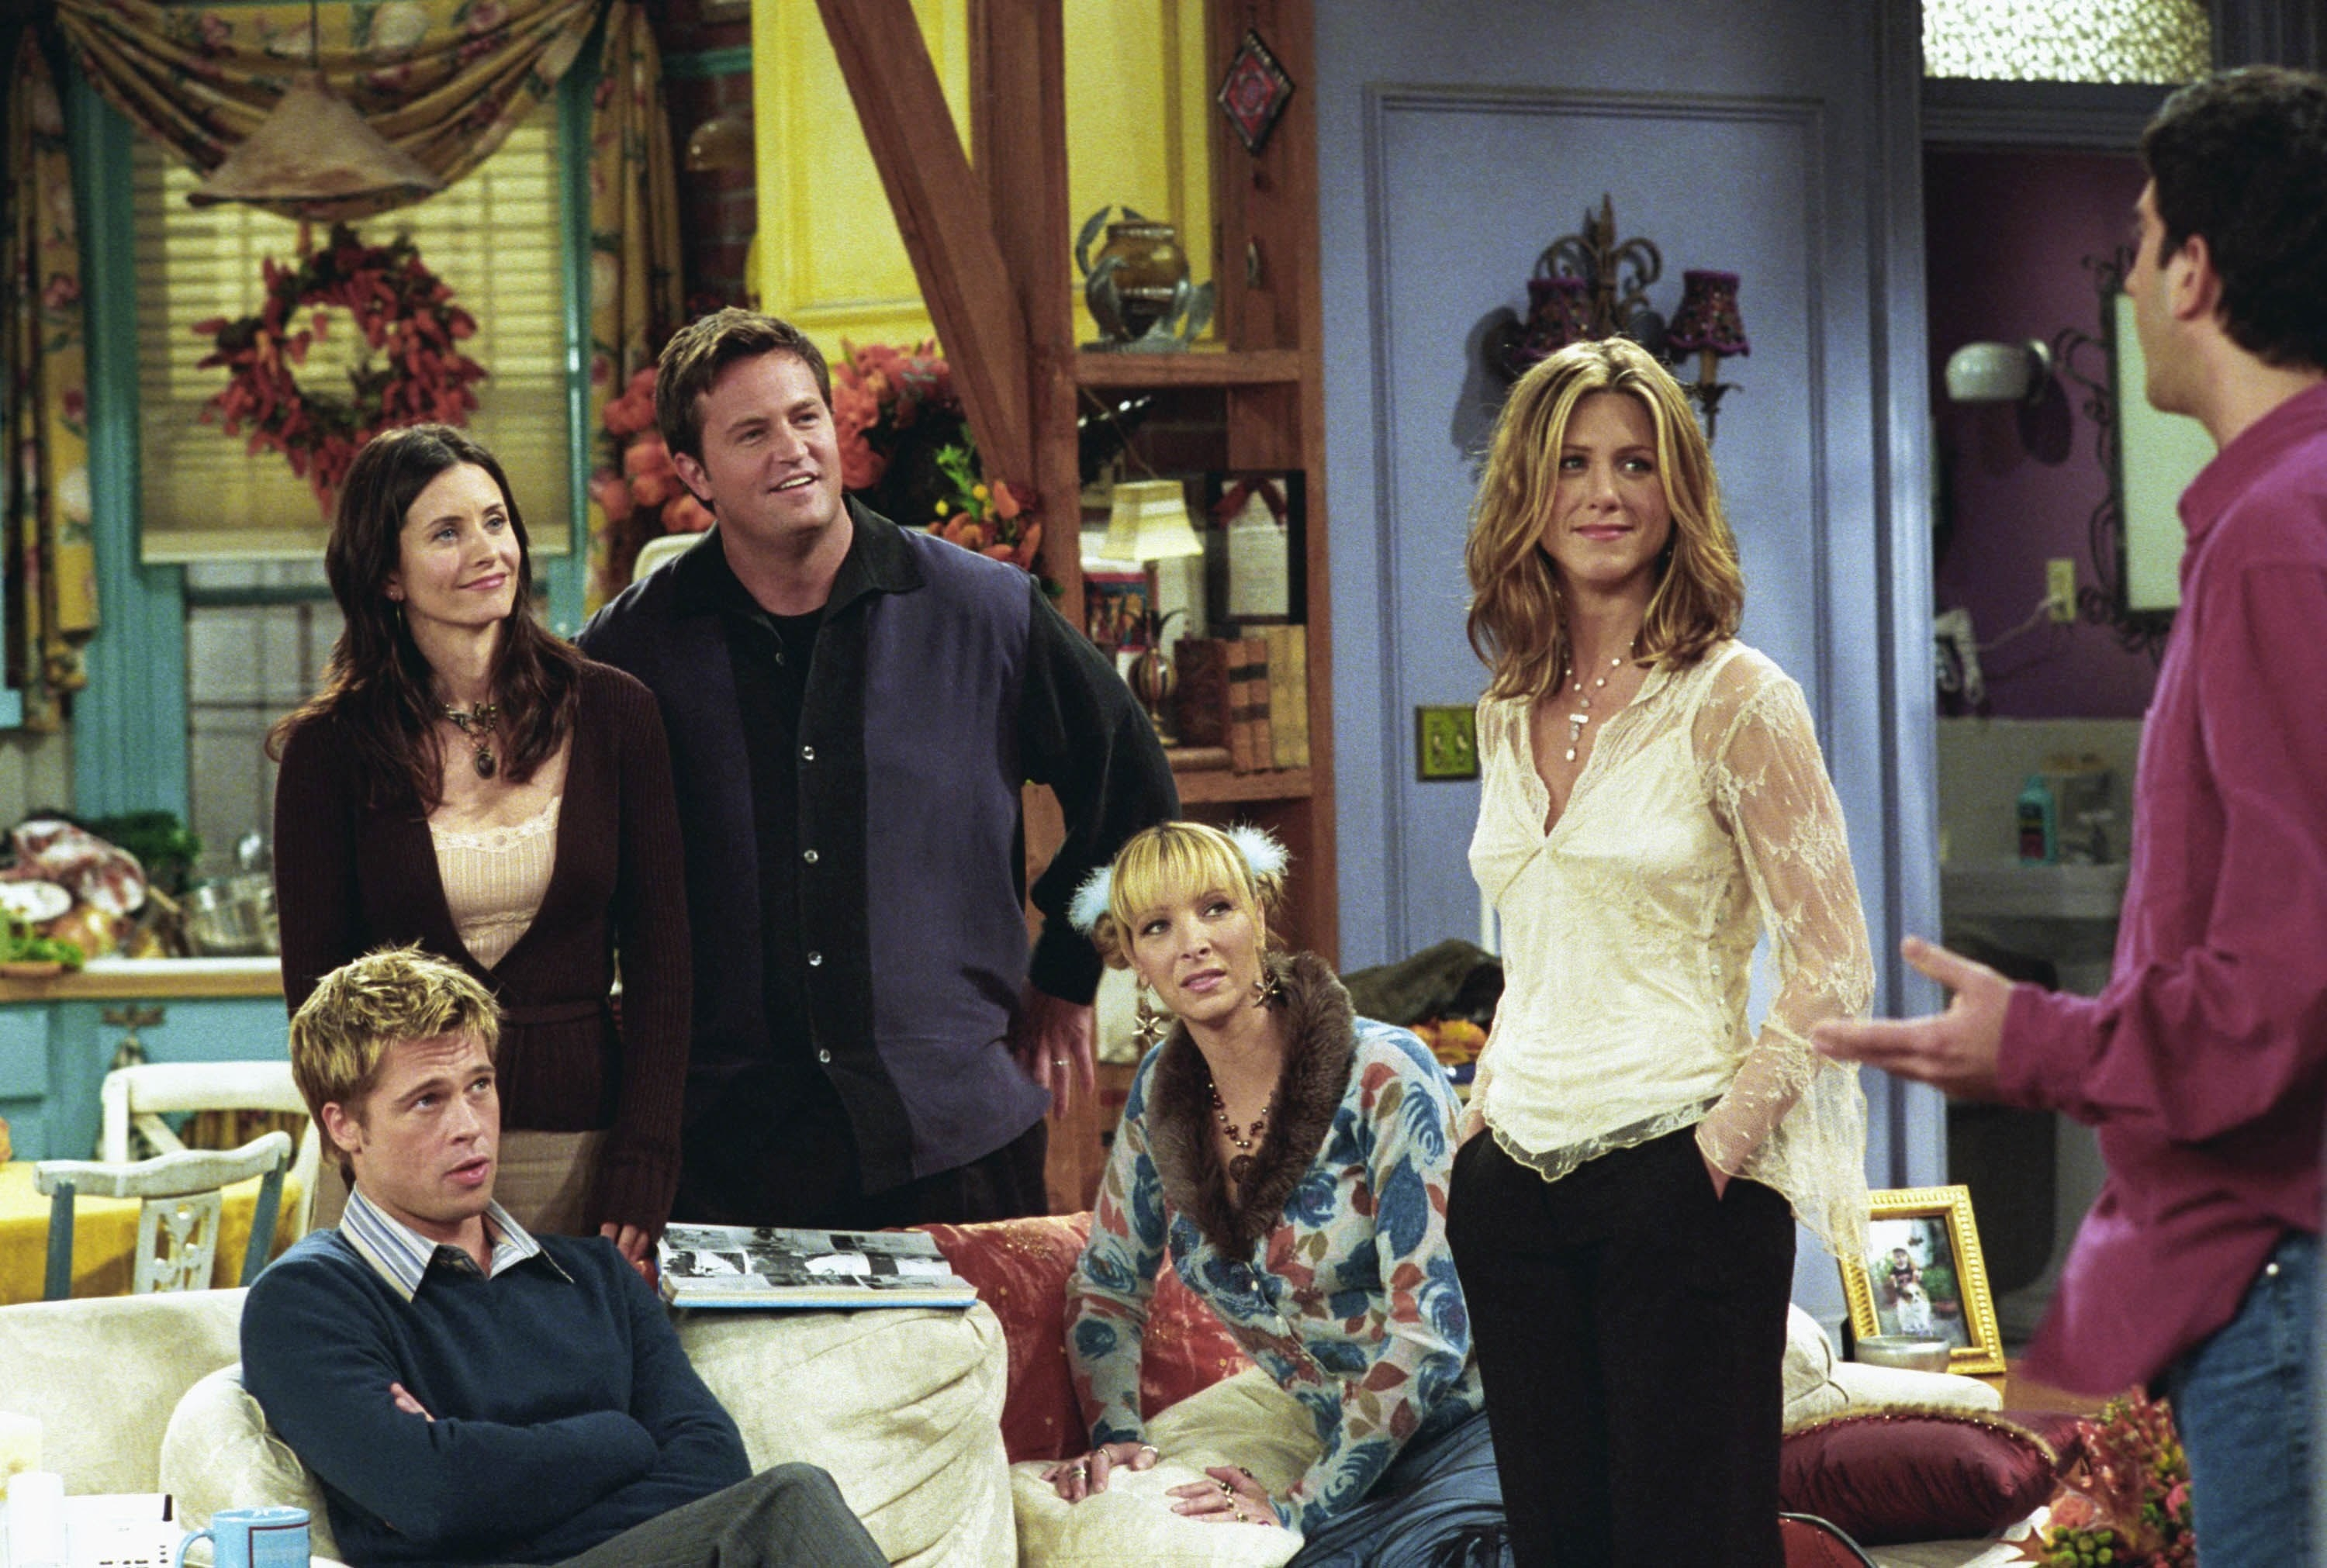 The Friends crew sits in the apartment with Brad